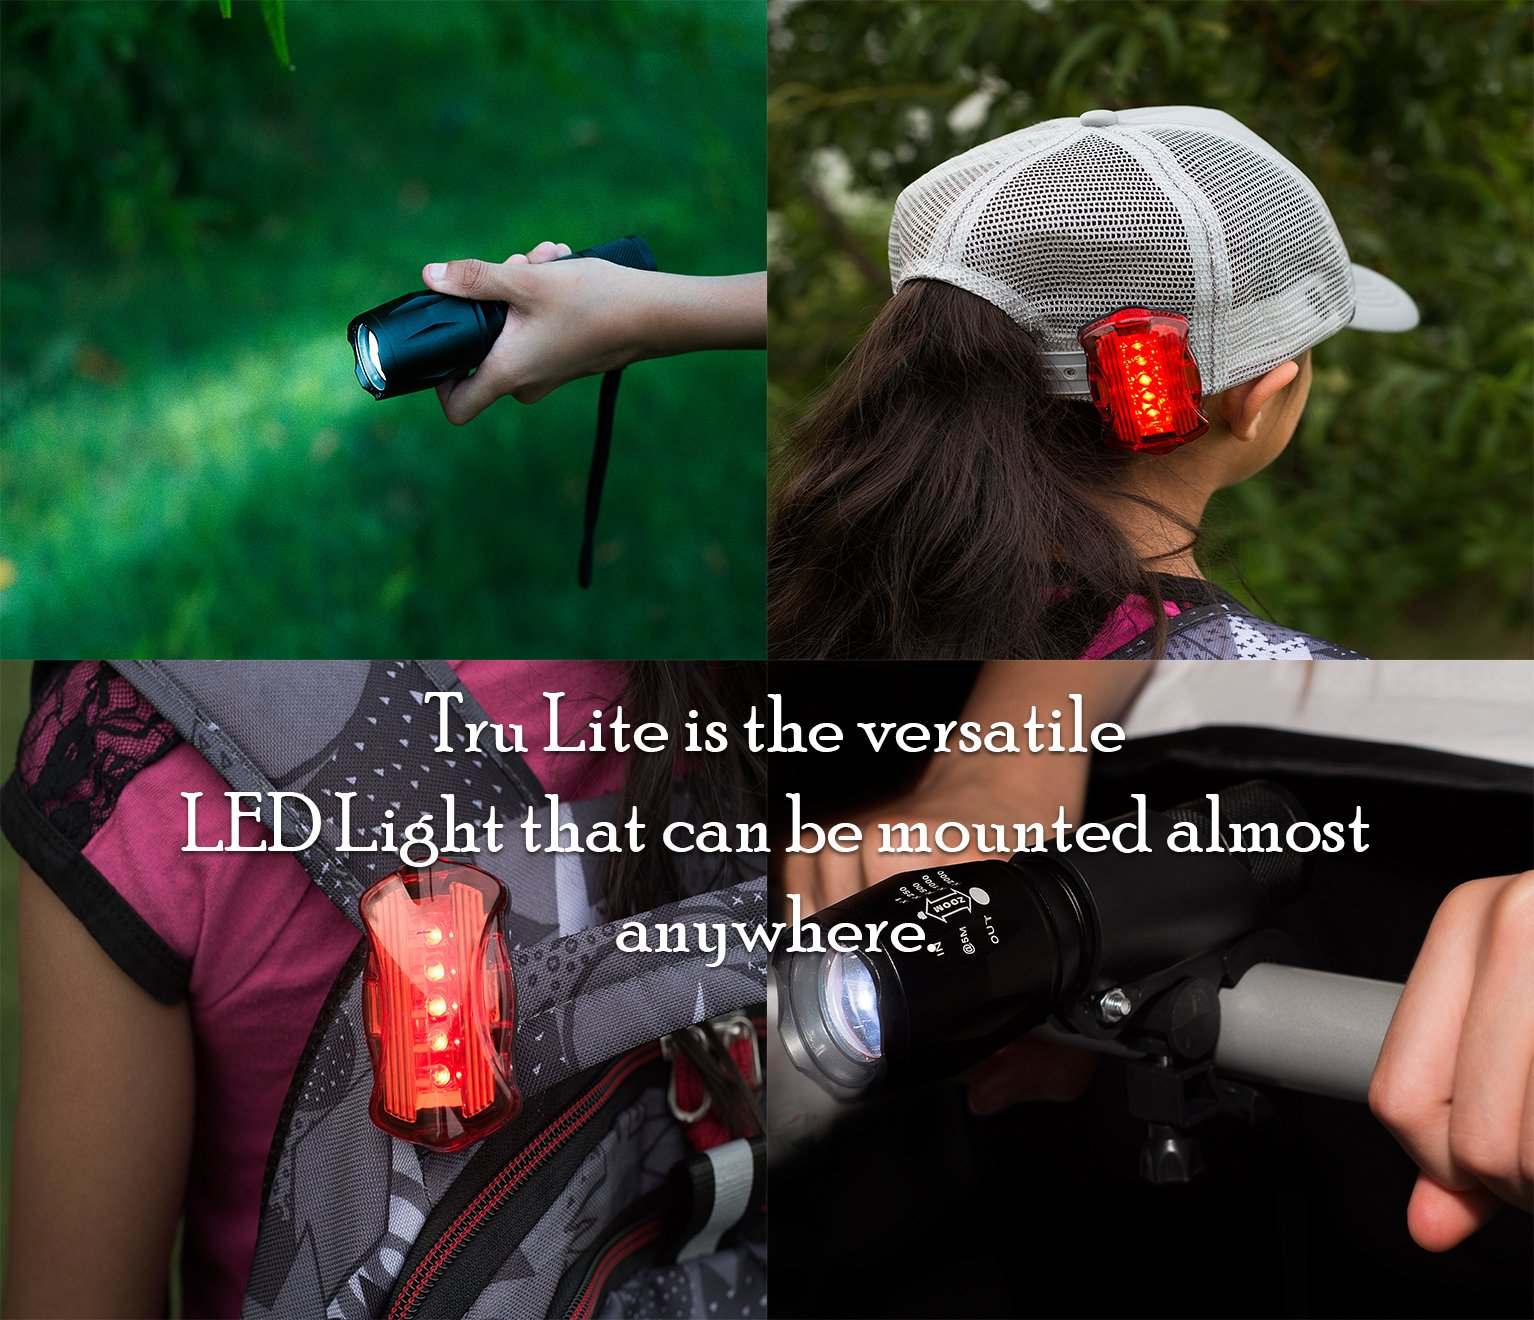 tru*Lite Bike Light Set-Super Bright 10W Removable Military Grade Tactical Flash Light-5 modes-1000+ Lumens-Zoom-5 LED Tail Light-7 modes-Water Resistant-Easy to Install-Life Time Warranty by tru*Lite (Image #7)